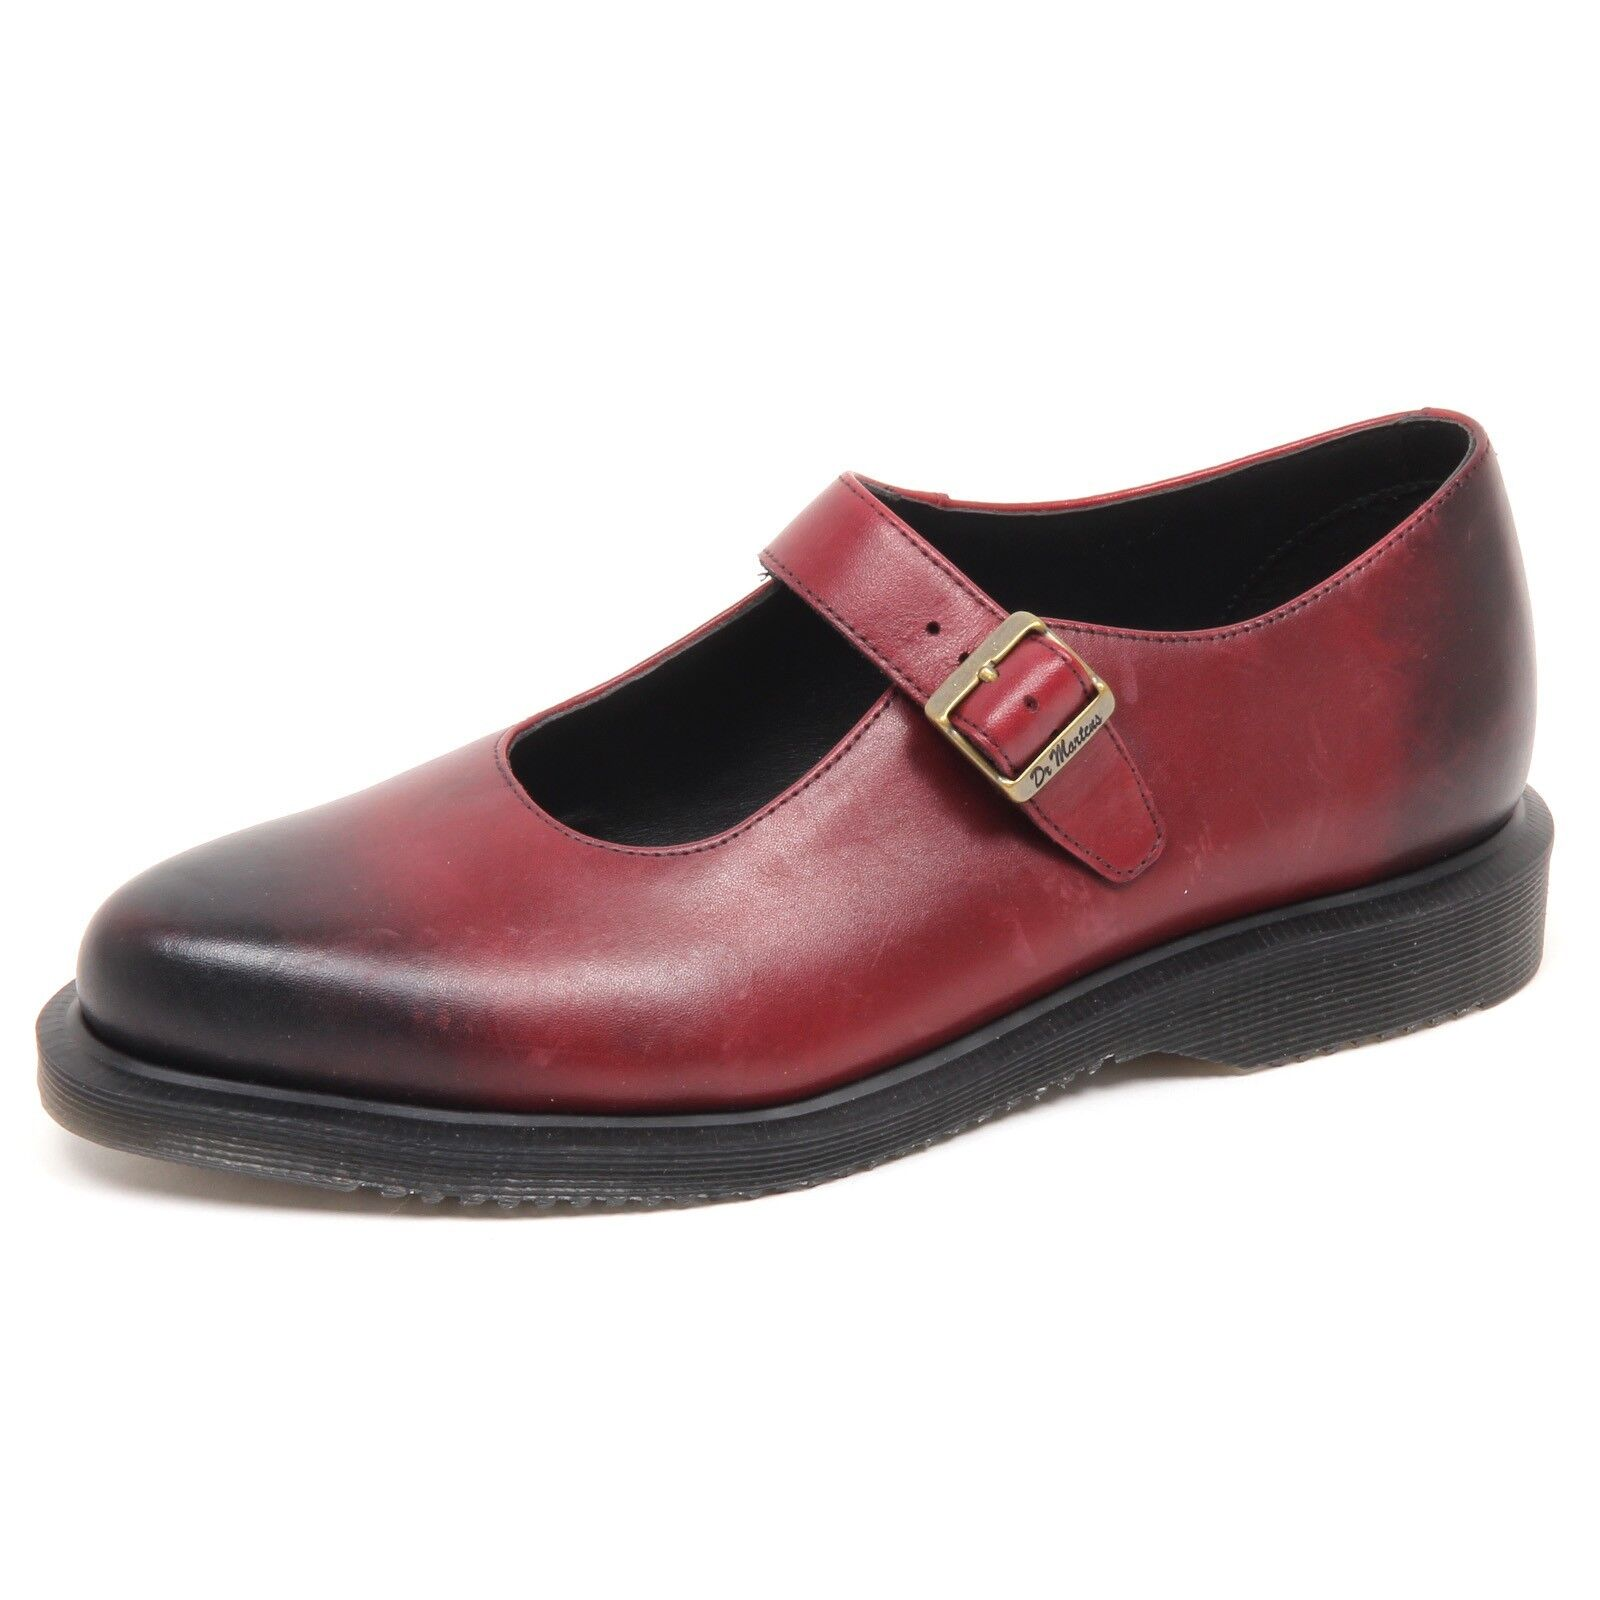 D7312 (without box) ballerina red donna DR. MARTENS scarpa red ballerina vintage shoe woman 62a0ea